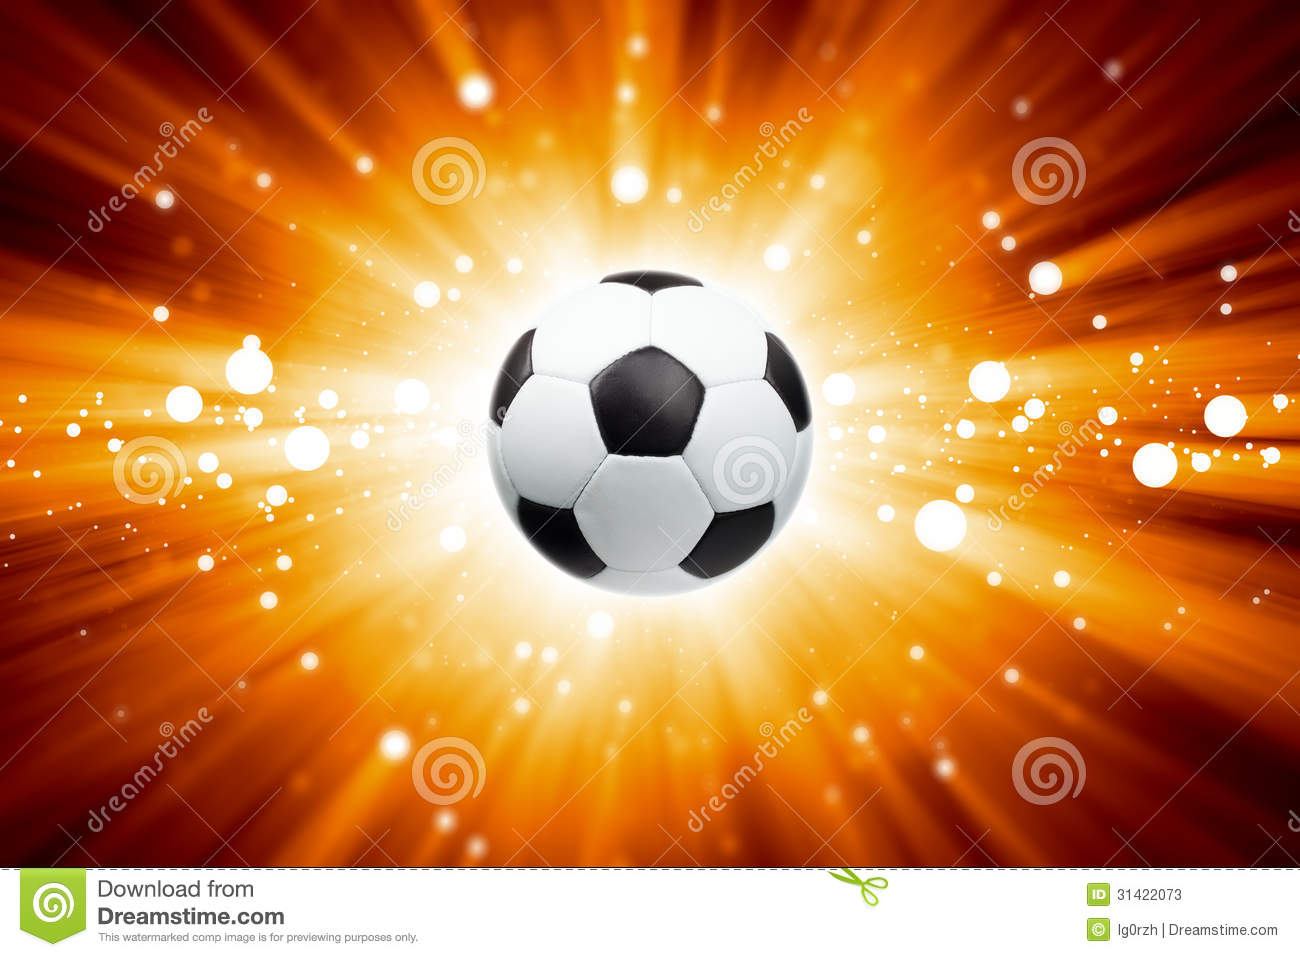 Abstract Sports Background Royalty Free Stock Image: Soccer Ball, Spotlights Stock Photos